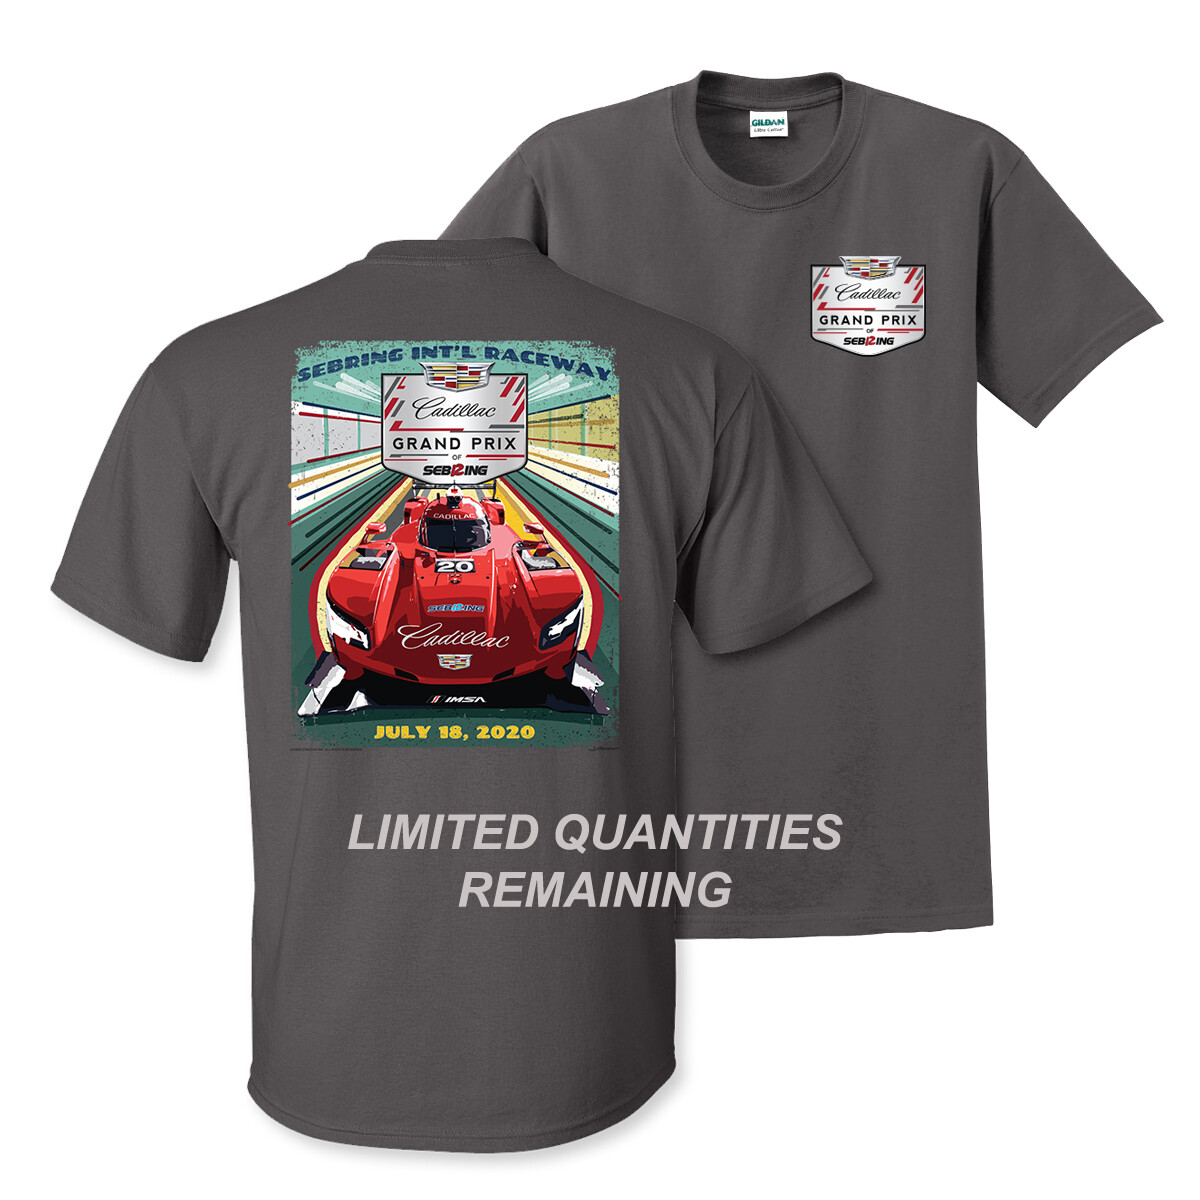 2020 Cadillac Grand Prix Official Event Tee Limited Edition - Charcoal